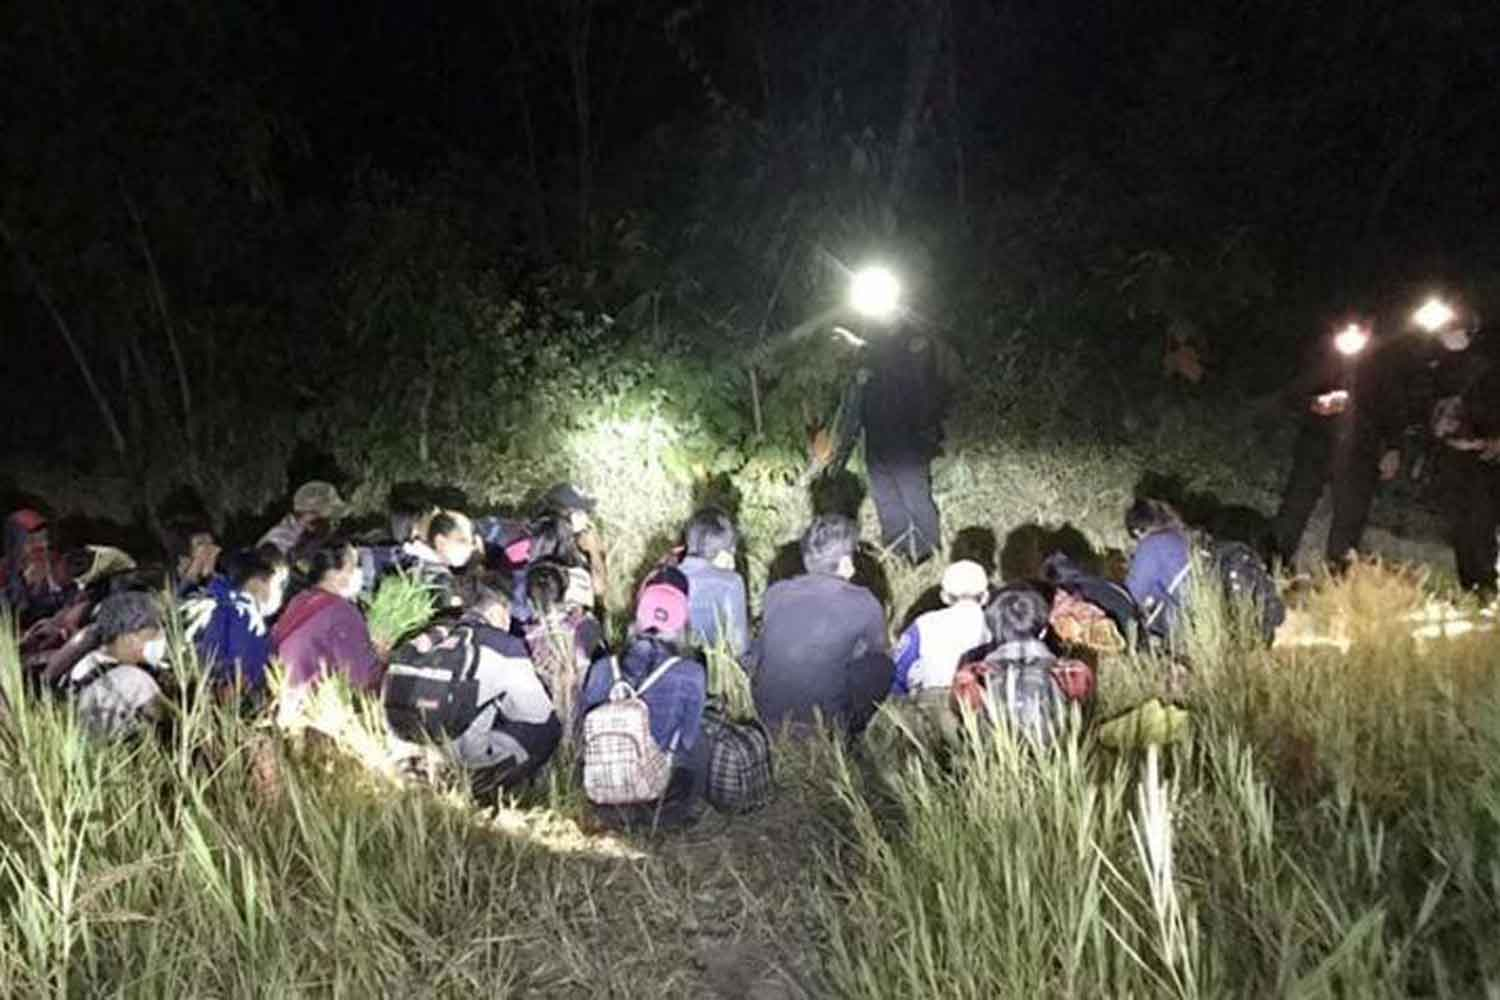 Security officials stop 25 illegal Myanmar migrants in Muang district, Kanchanaburi, on Dec 13. (Photo by Piyarat Chongcharoen)